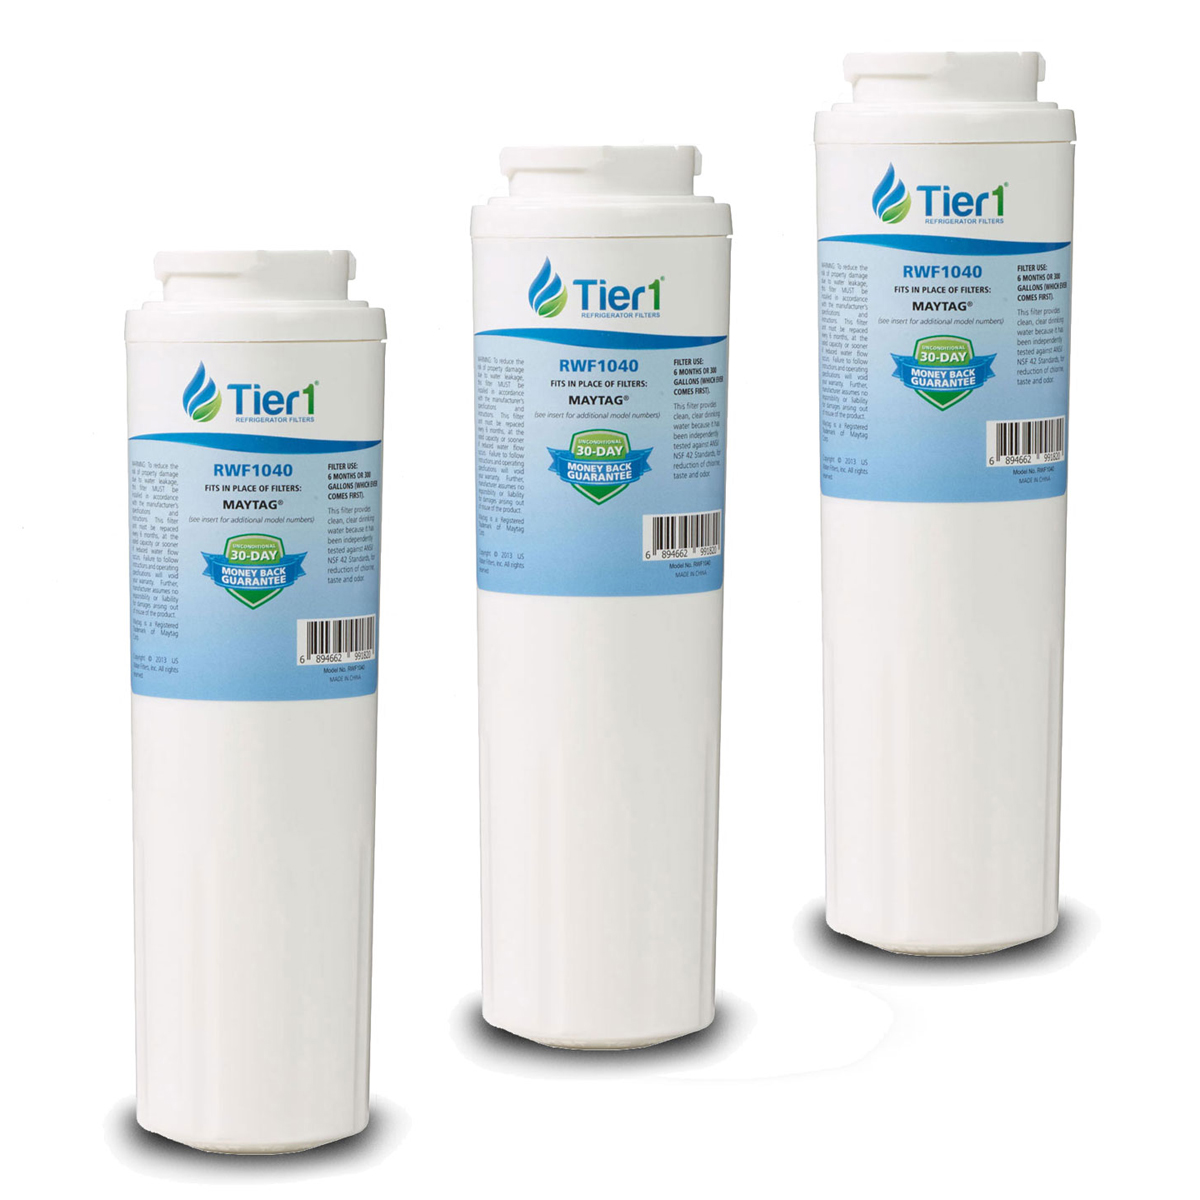 EDR4RXD1 EveryDrop UKF8001 Maytag Comparable Refrigerator Water Filter Replacement By Tier1 (3 Pack) TIER1_RWF1040_3_PACK